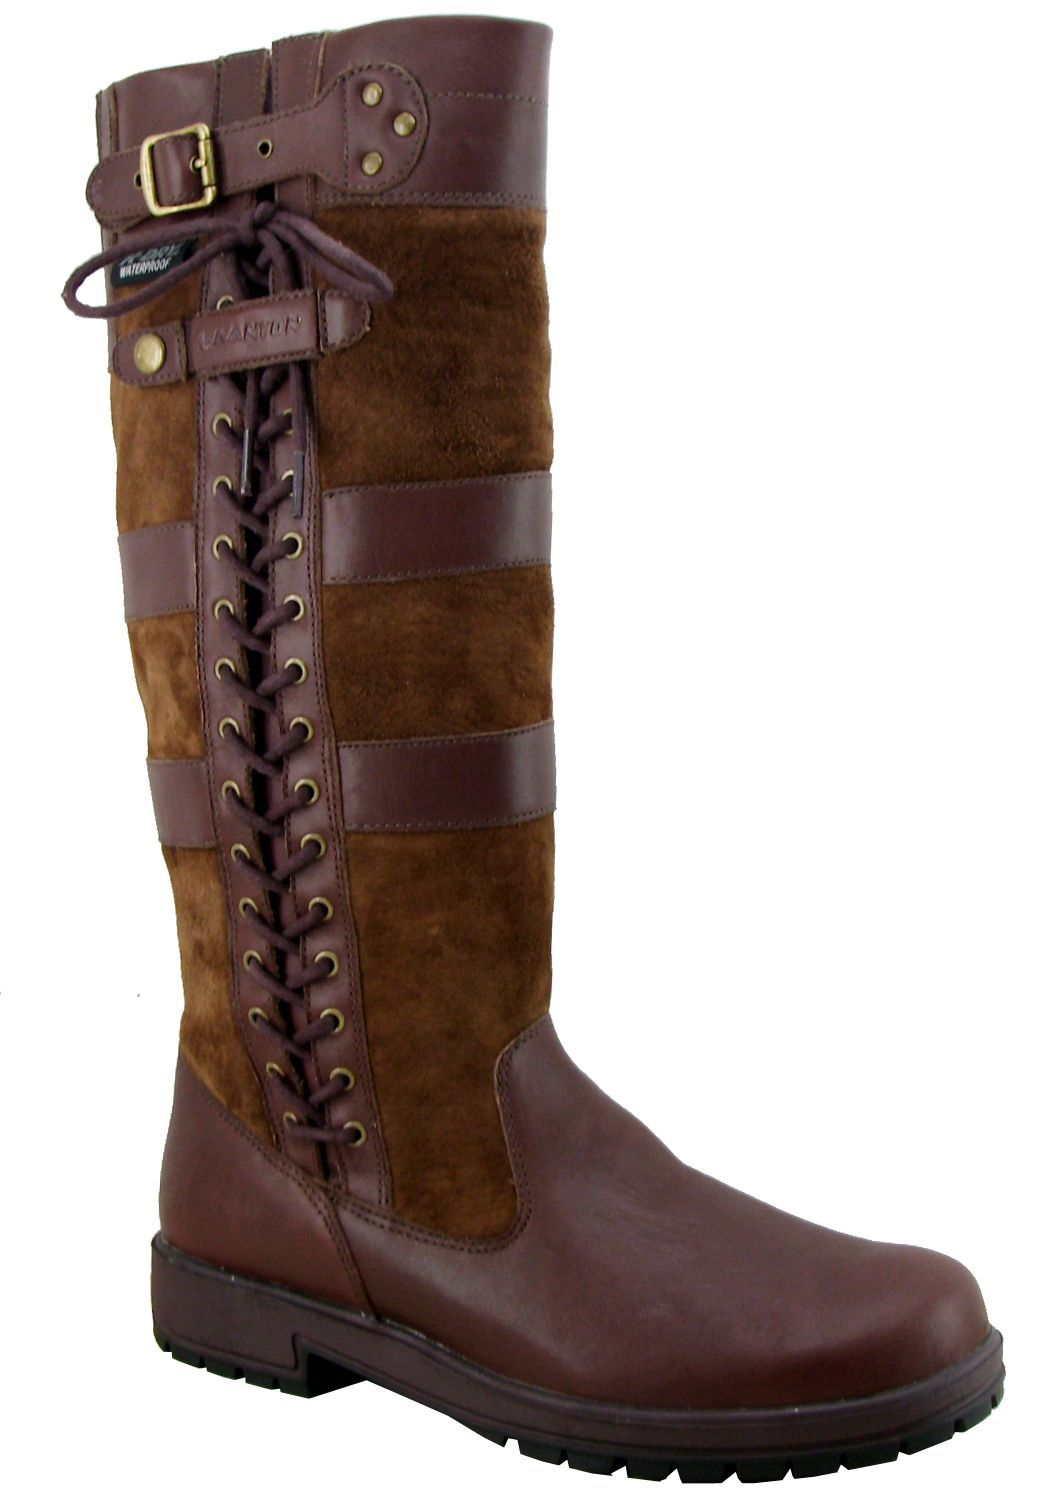 7e1315b9d1c Kanyon Ash Waterproof Country Boot - Wide Leg